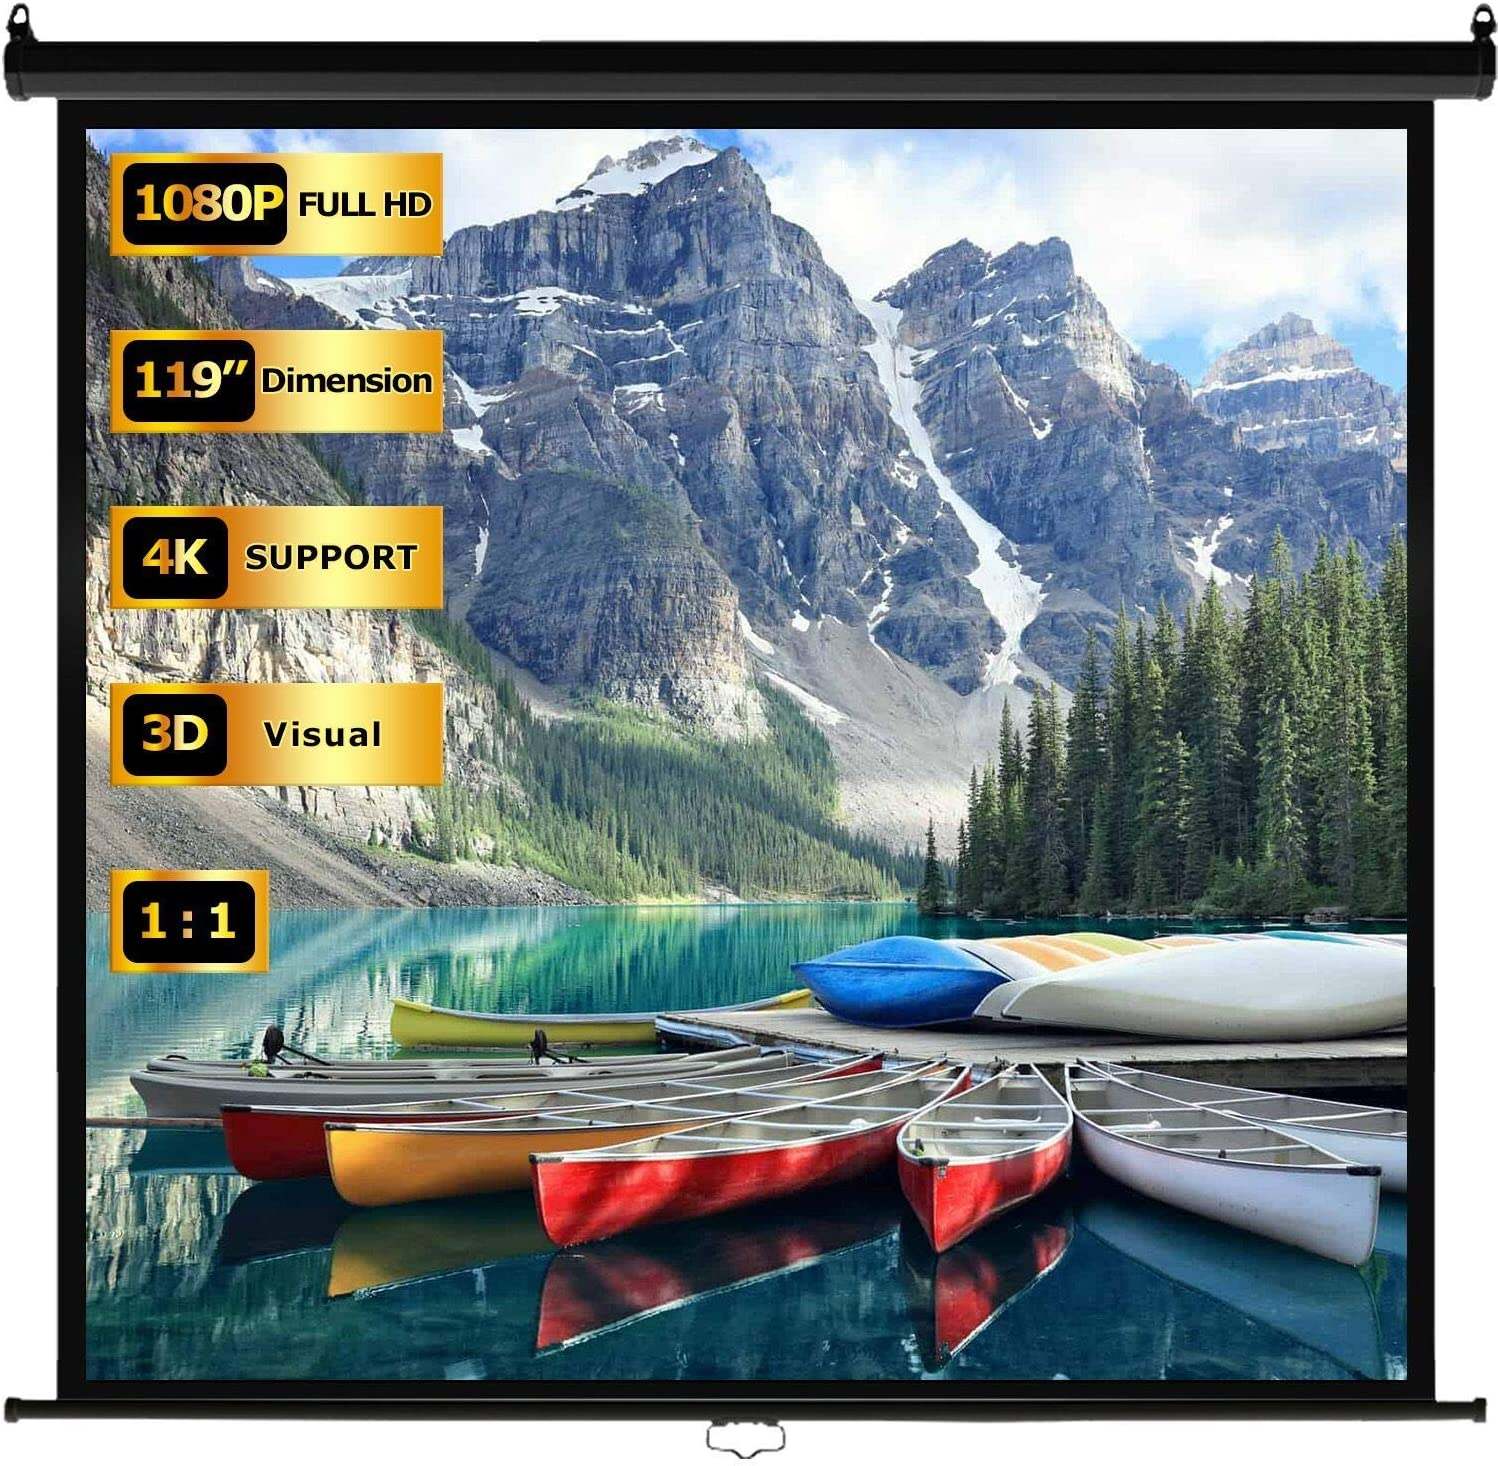 FDW Pull Down Projector Screen 119 inch 4K 1080P LCD Home Theater Projector